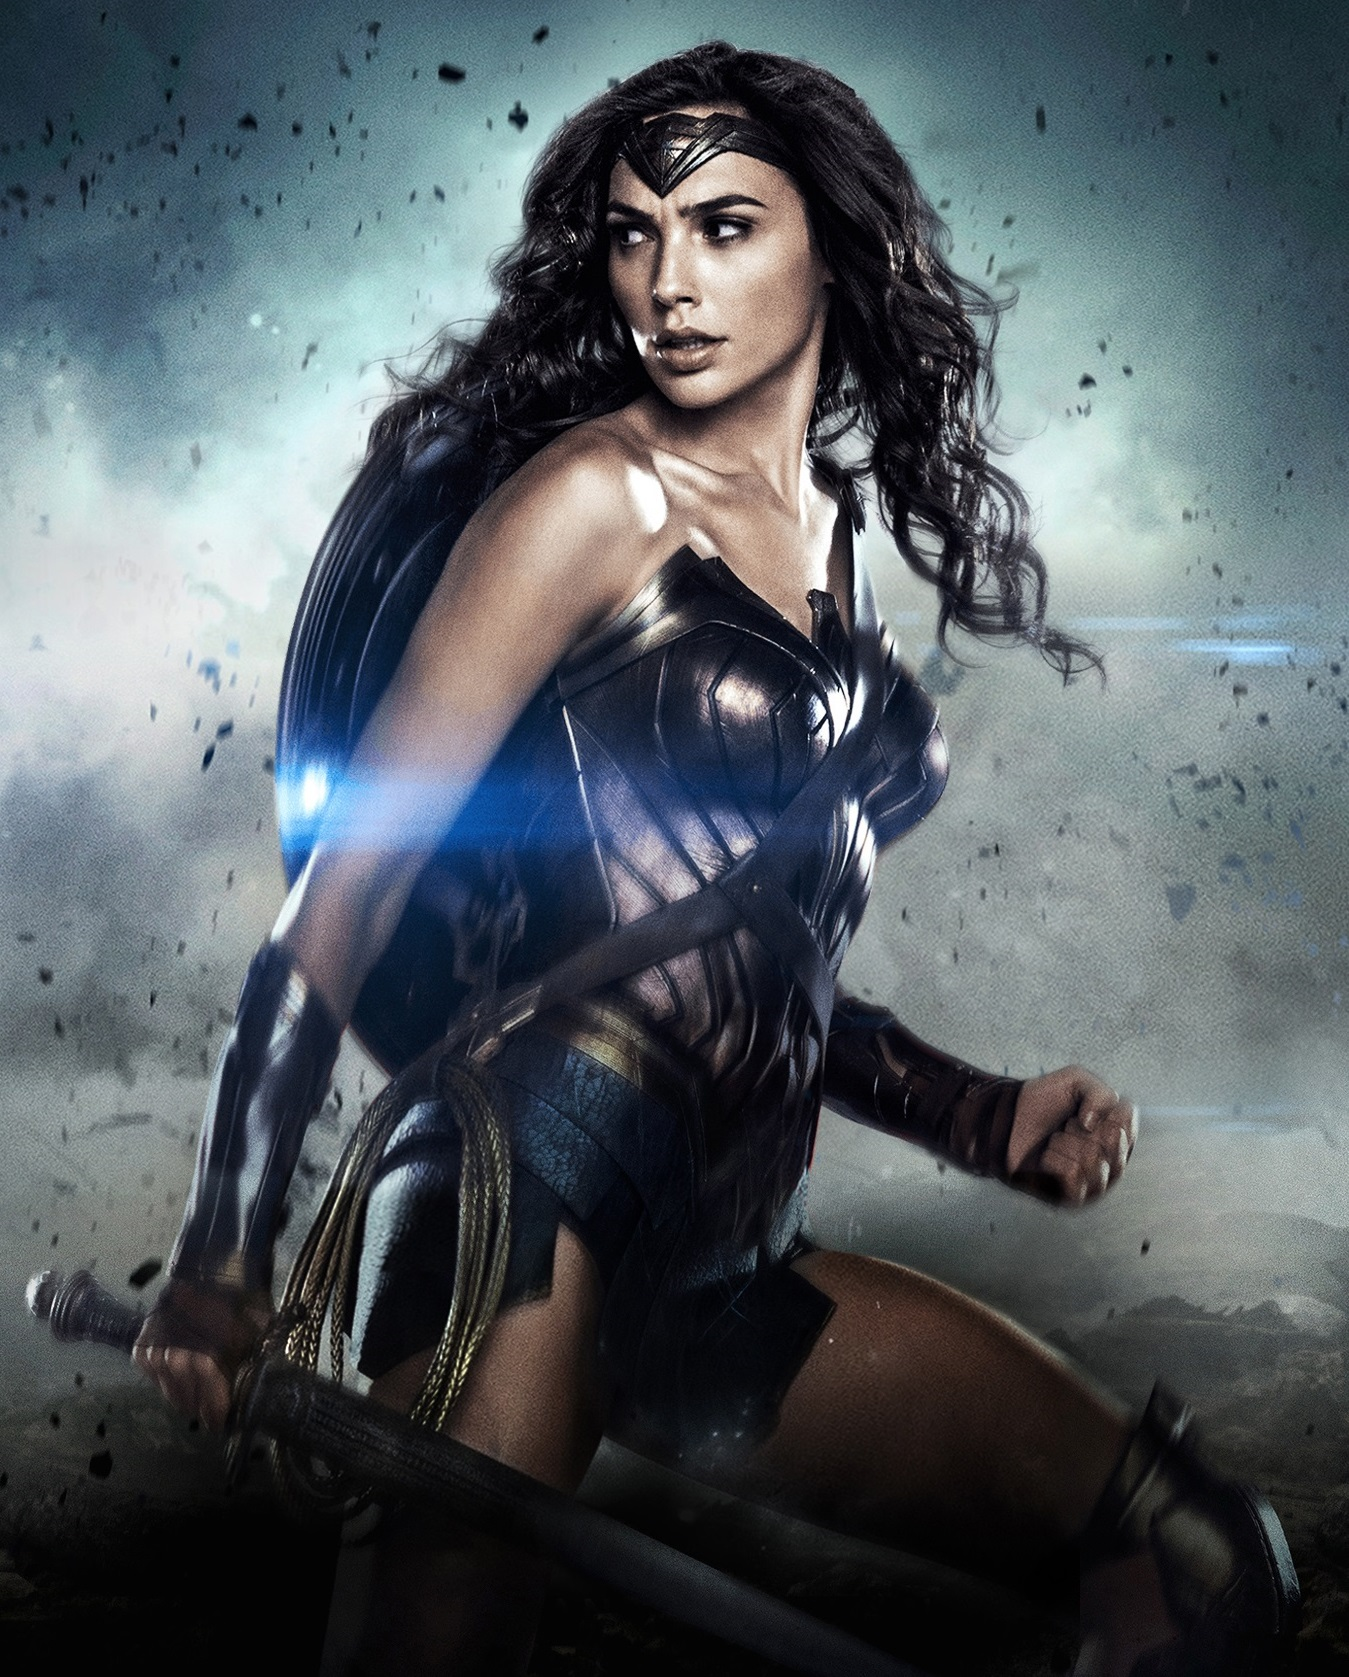 Wonder Woman Gal Gadot Poster